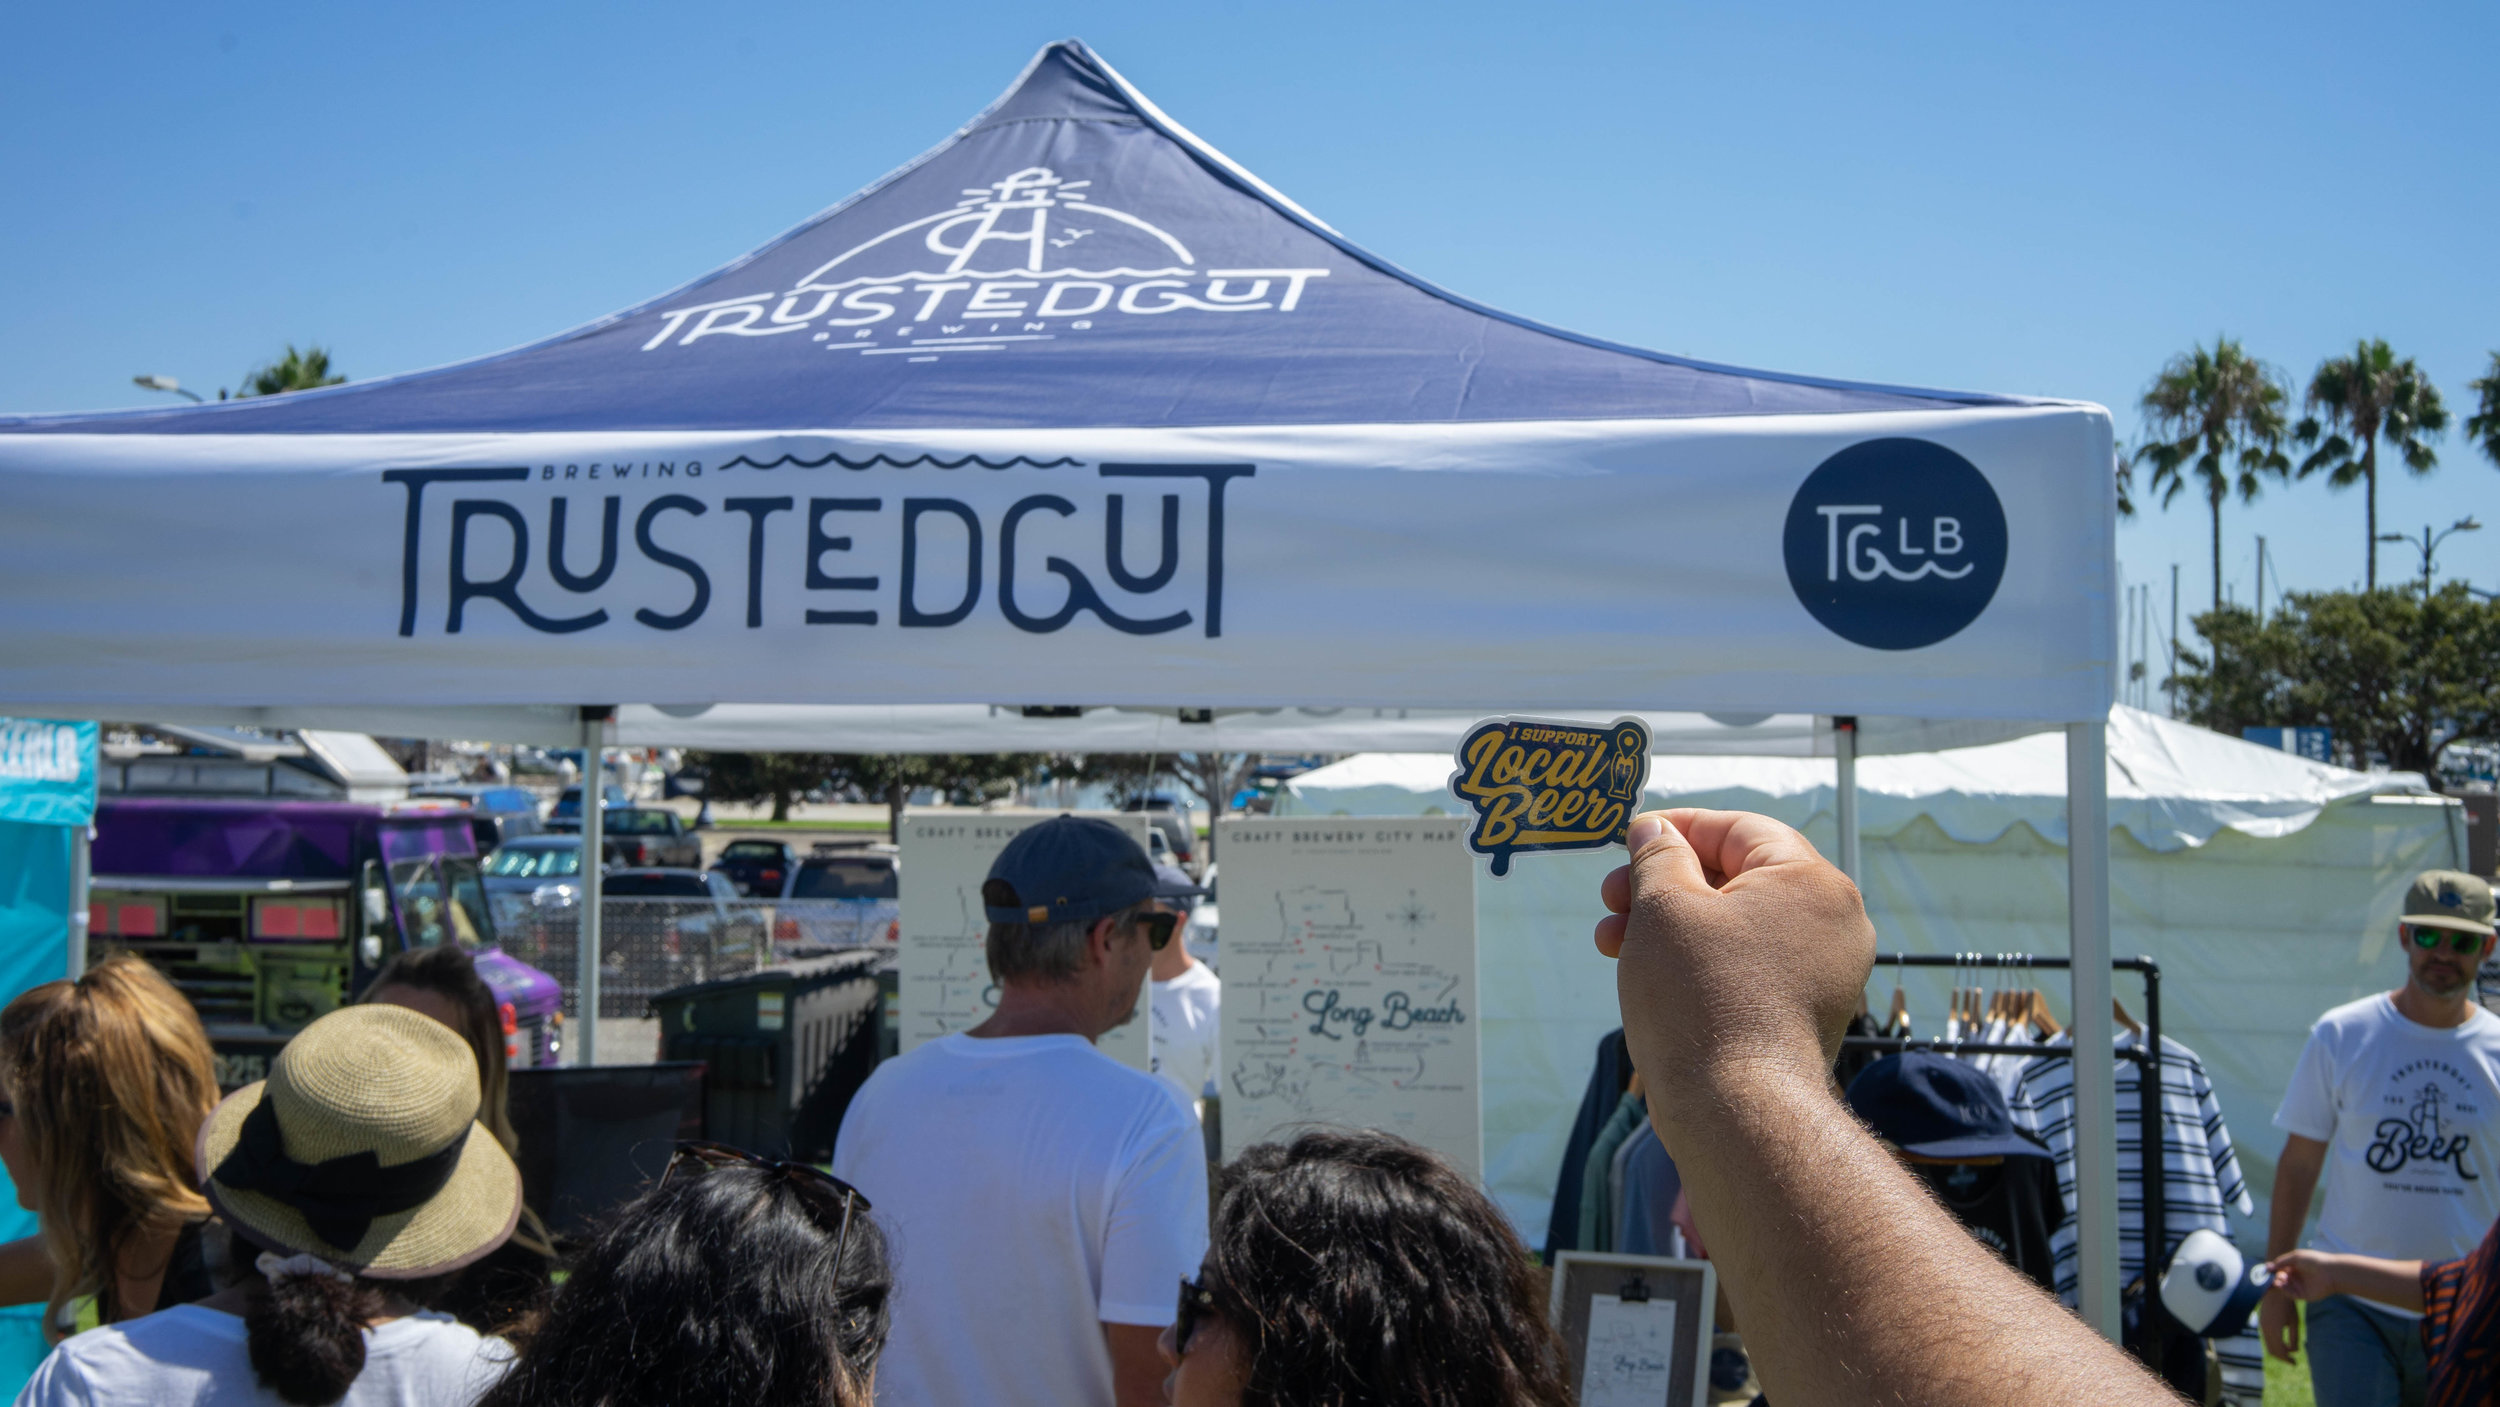 This was the first time the festival held an event outside Sacramento, CA. As such, the local breweries came out in full force.